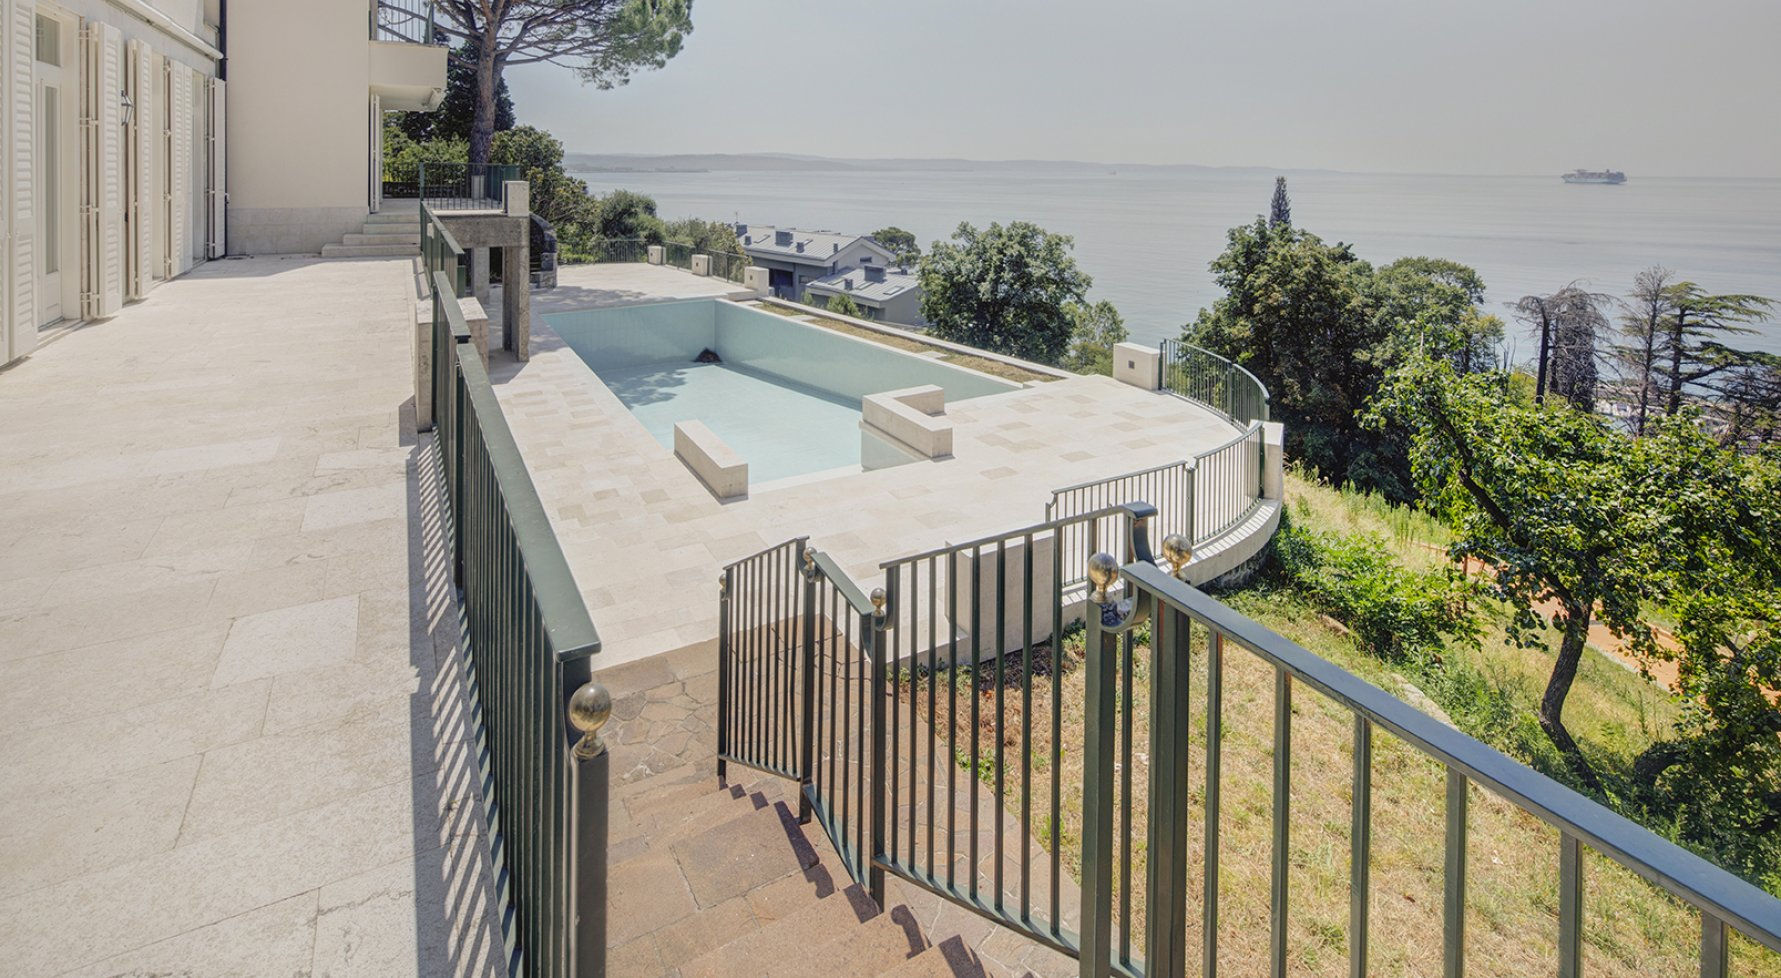 Property in 34136 Triest: Lots and lots of room for the whole family - your residence in Trieste - picture 1